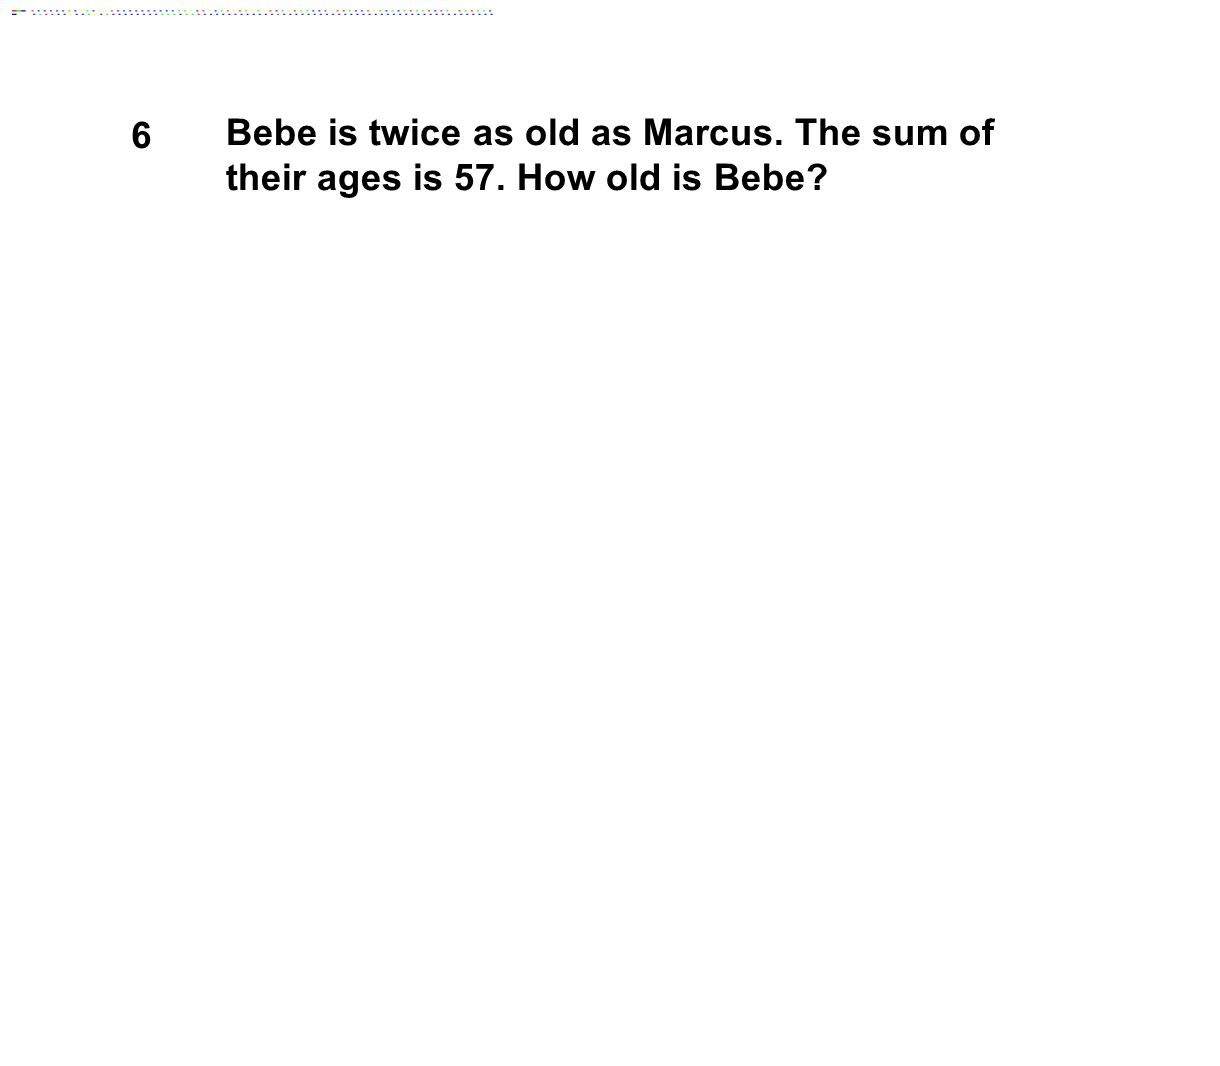 6 Bebe is twice as old as Marcus. The sum of their ages is 57. How old is Bebe?